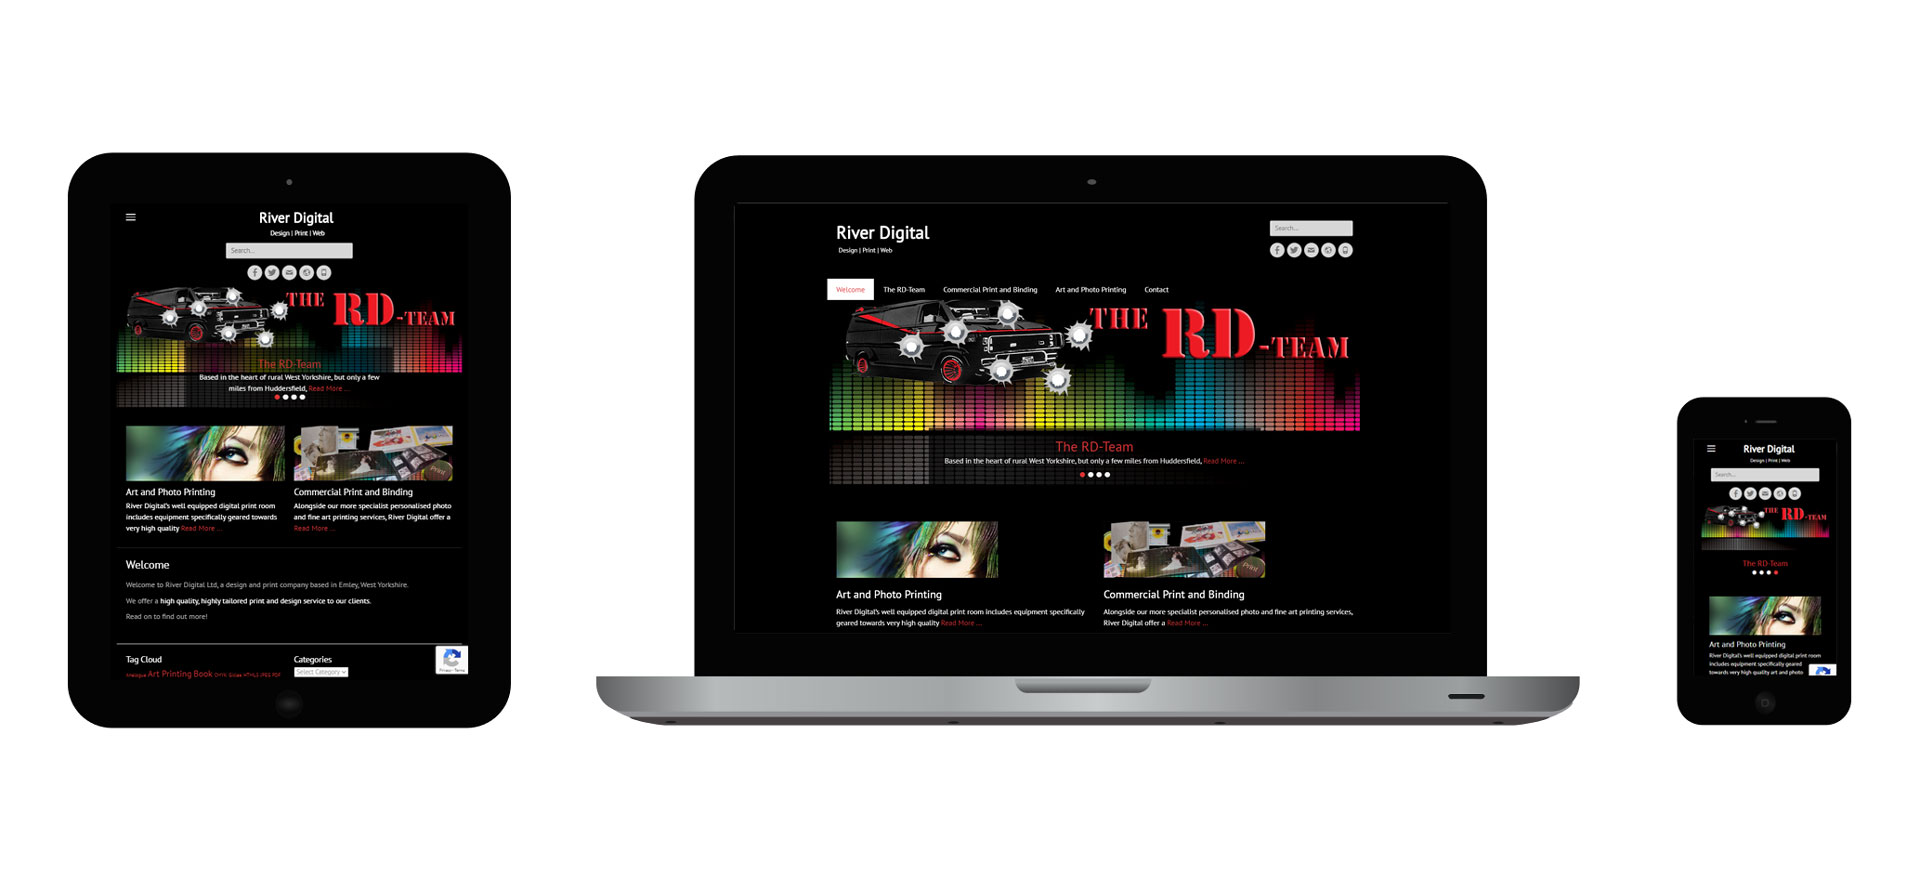 Images of the River Digital responsive website on different devices